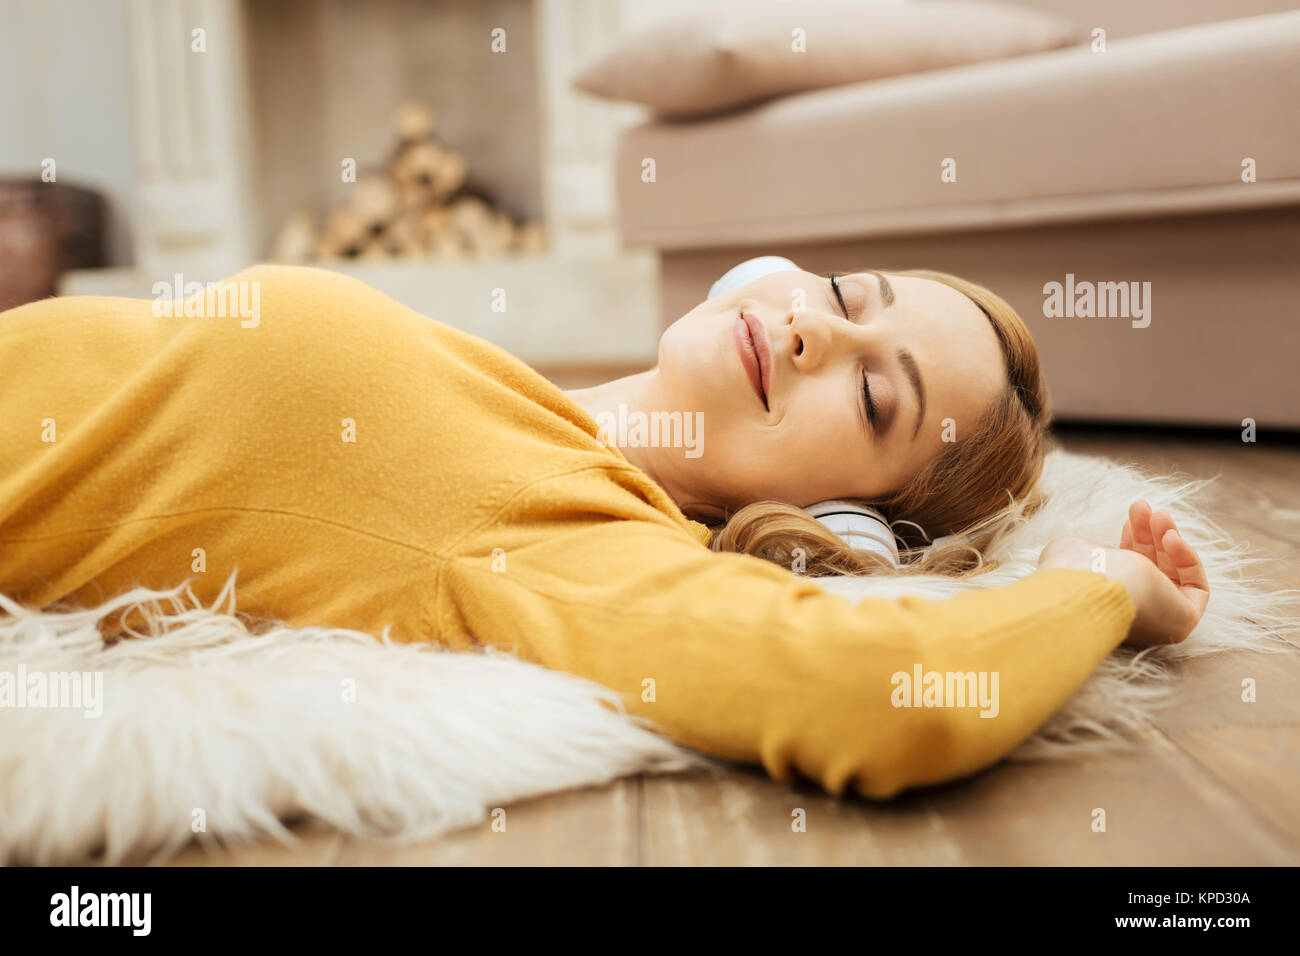 Glad woman listening to music with her eyes closed - Stock Image